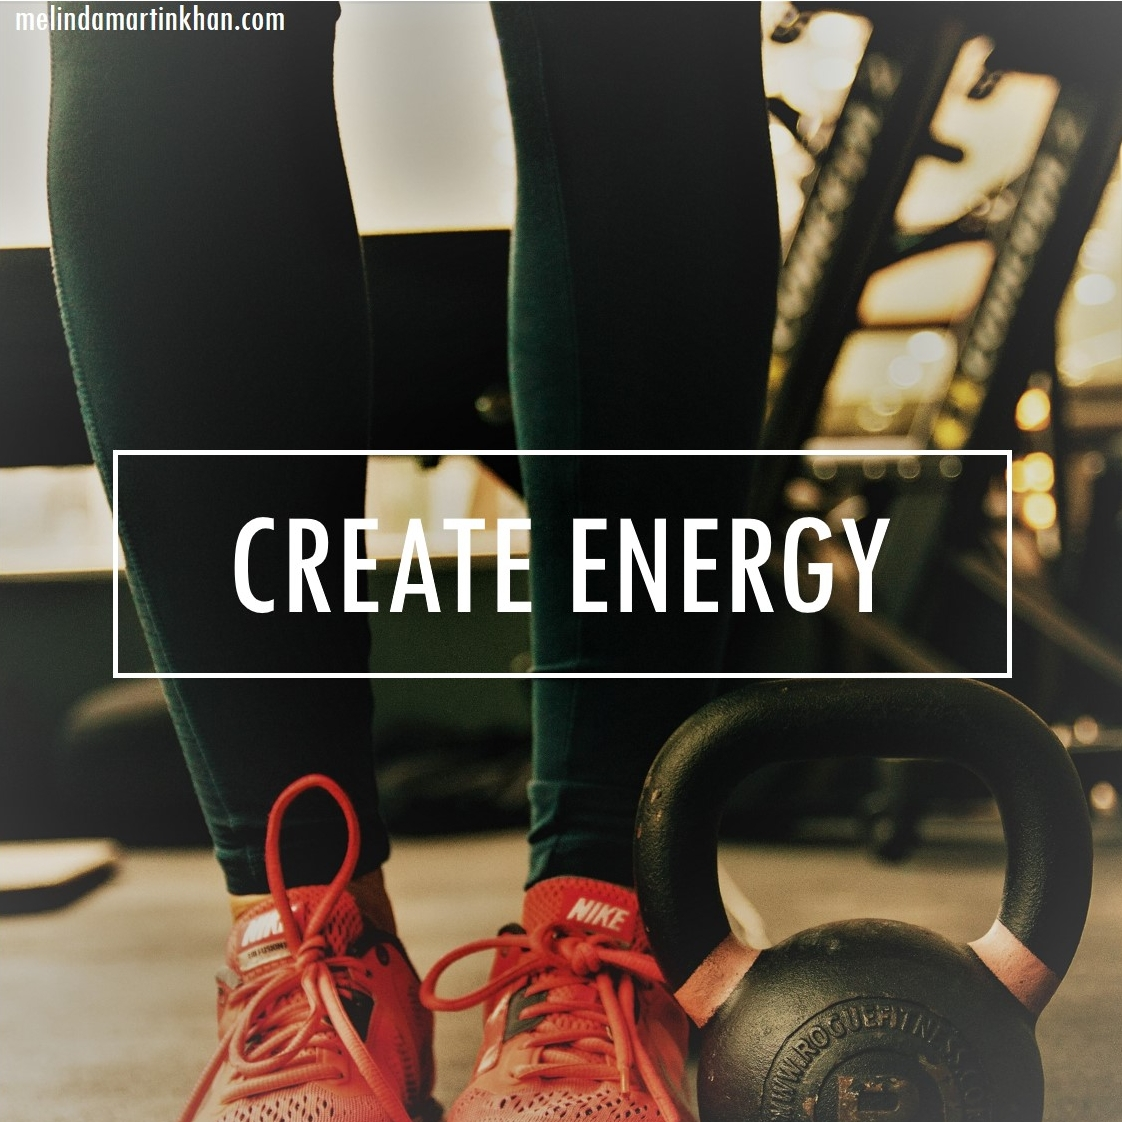 createenergy_gym.jpg